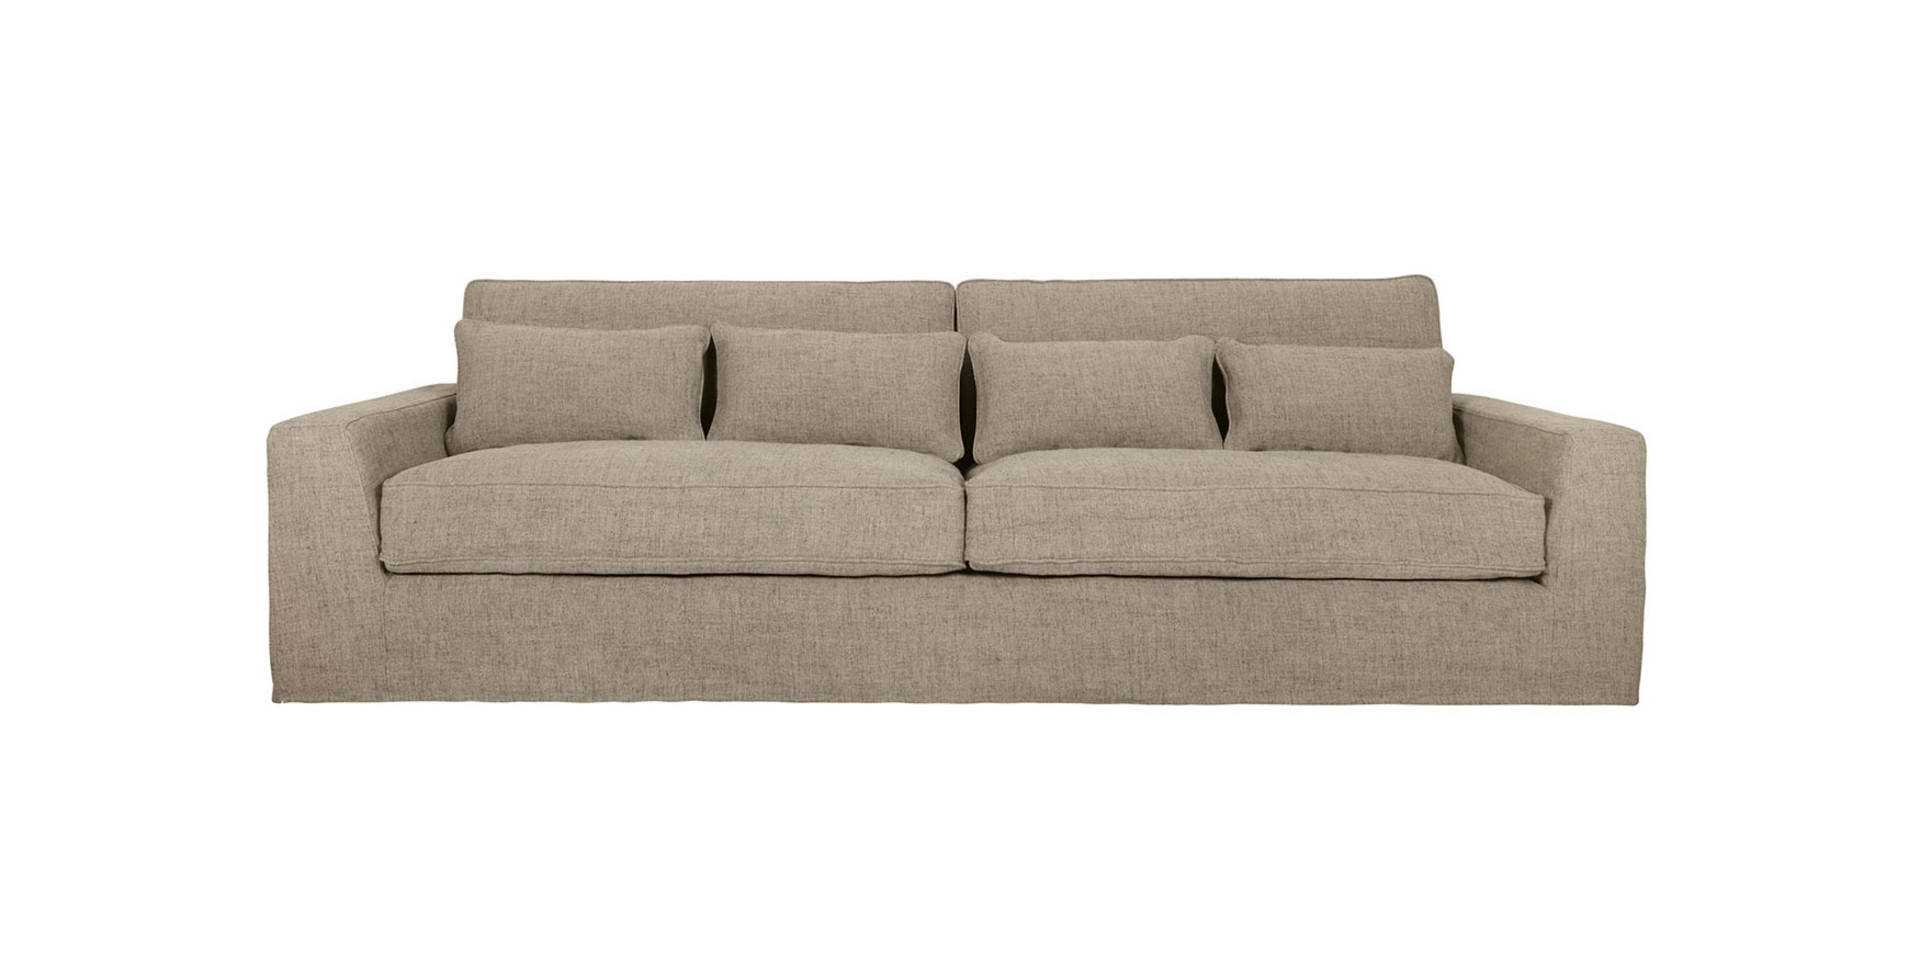 sits-newyork-canape-4seater_linen_l616_006_grain_1